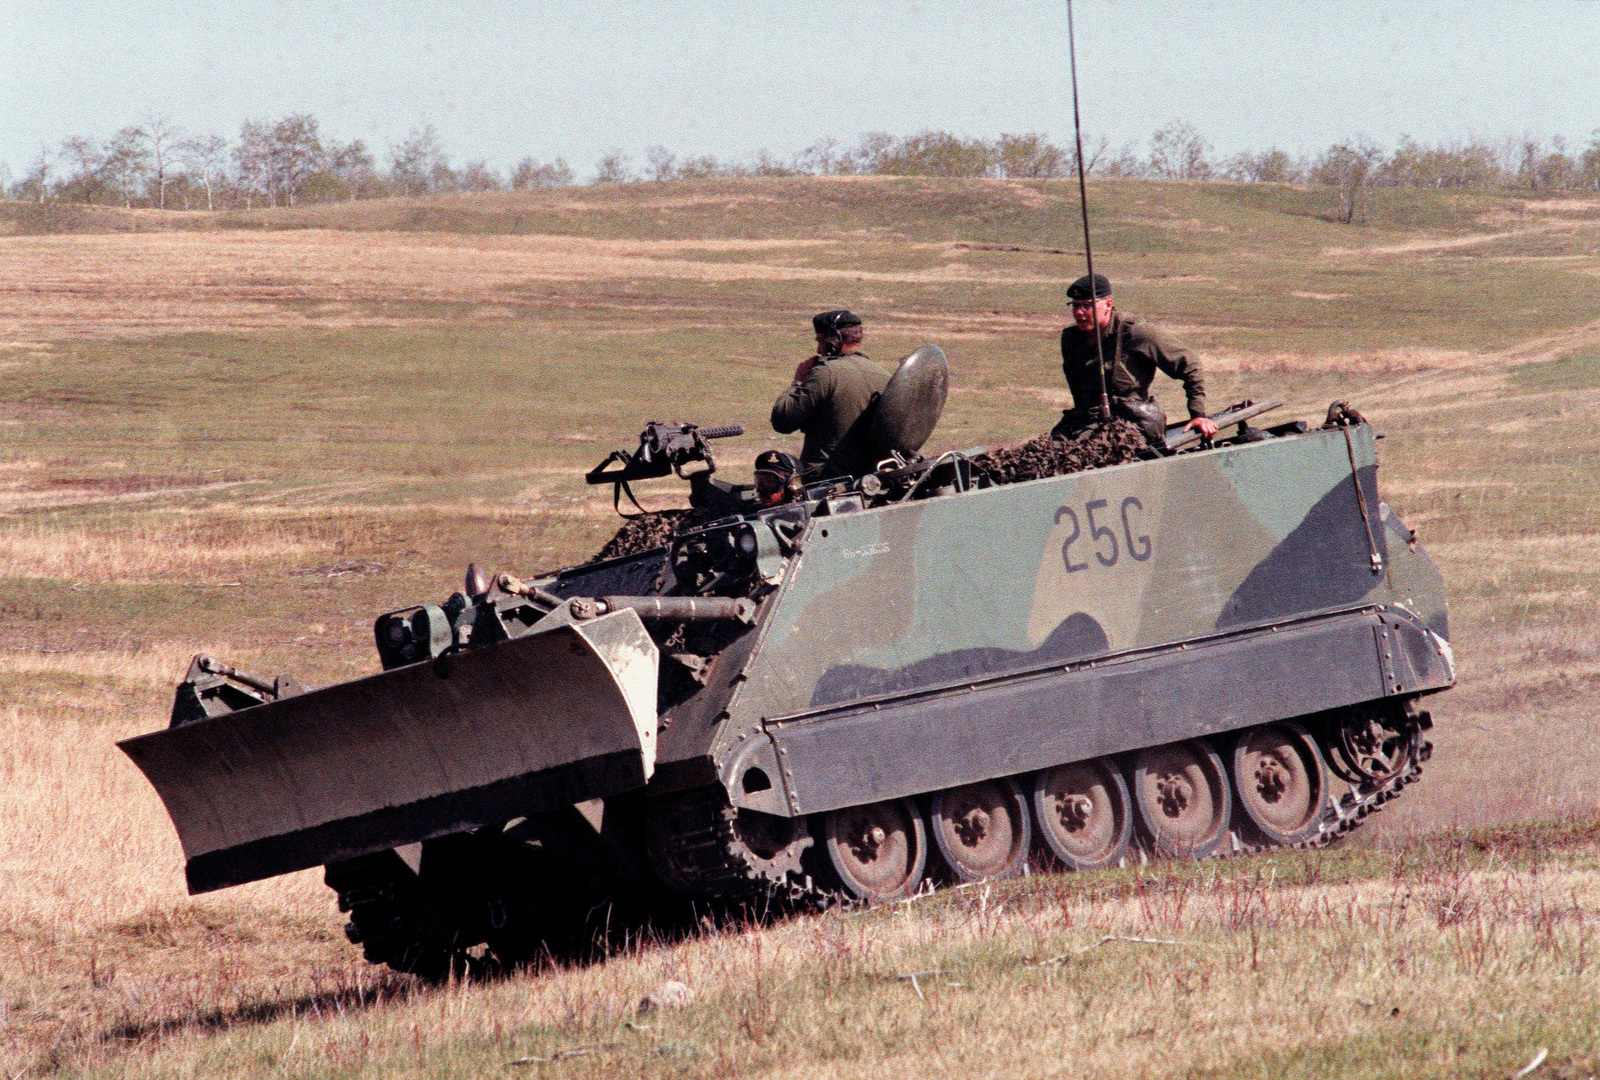 A Canadian army M-113A1 armored personnel carrier, equipped with a bulldozer blade, in use during the combined United States/Canadian NATO exercise RENDEZVOUS '83